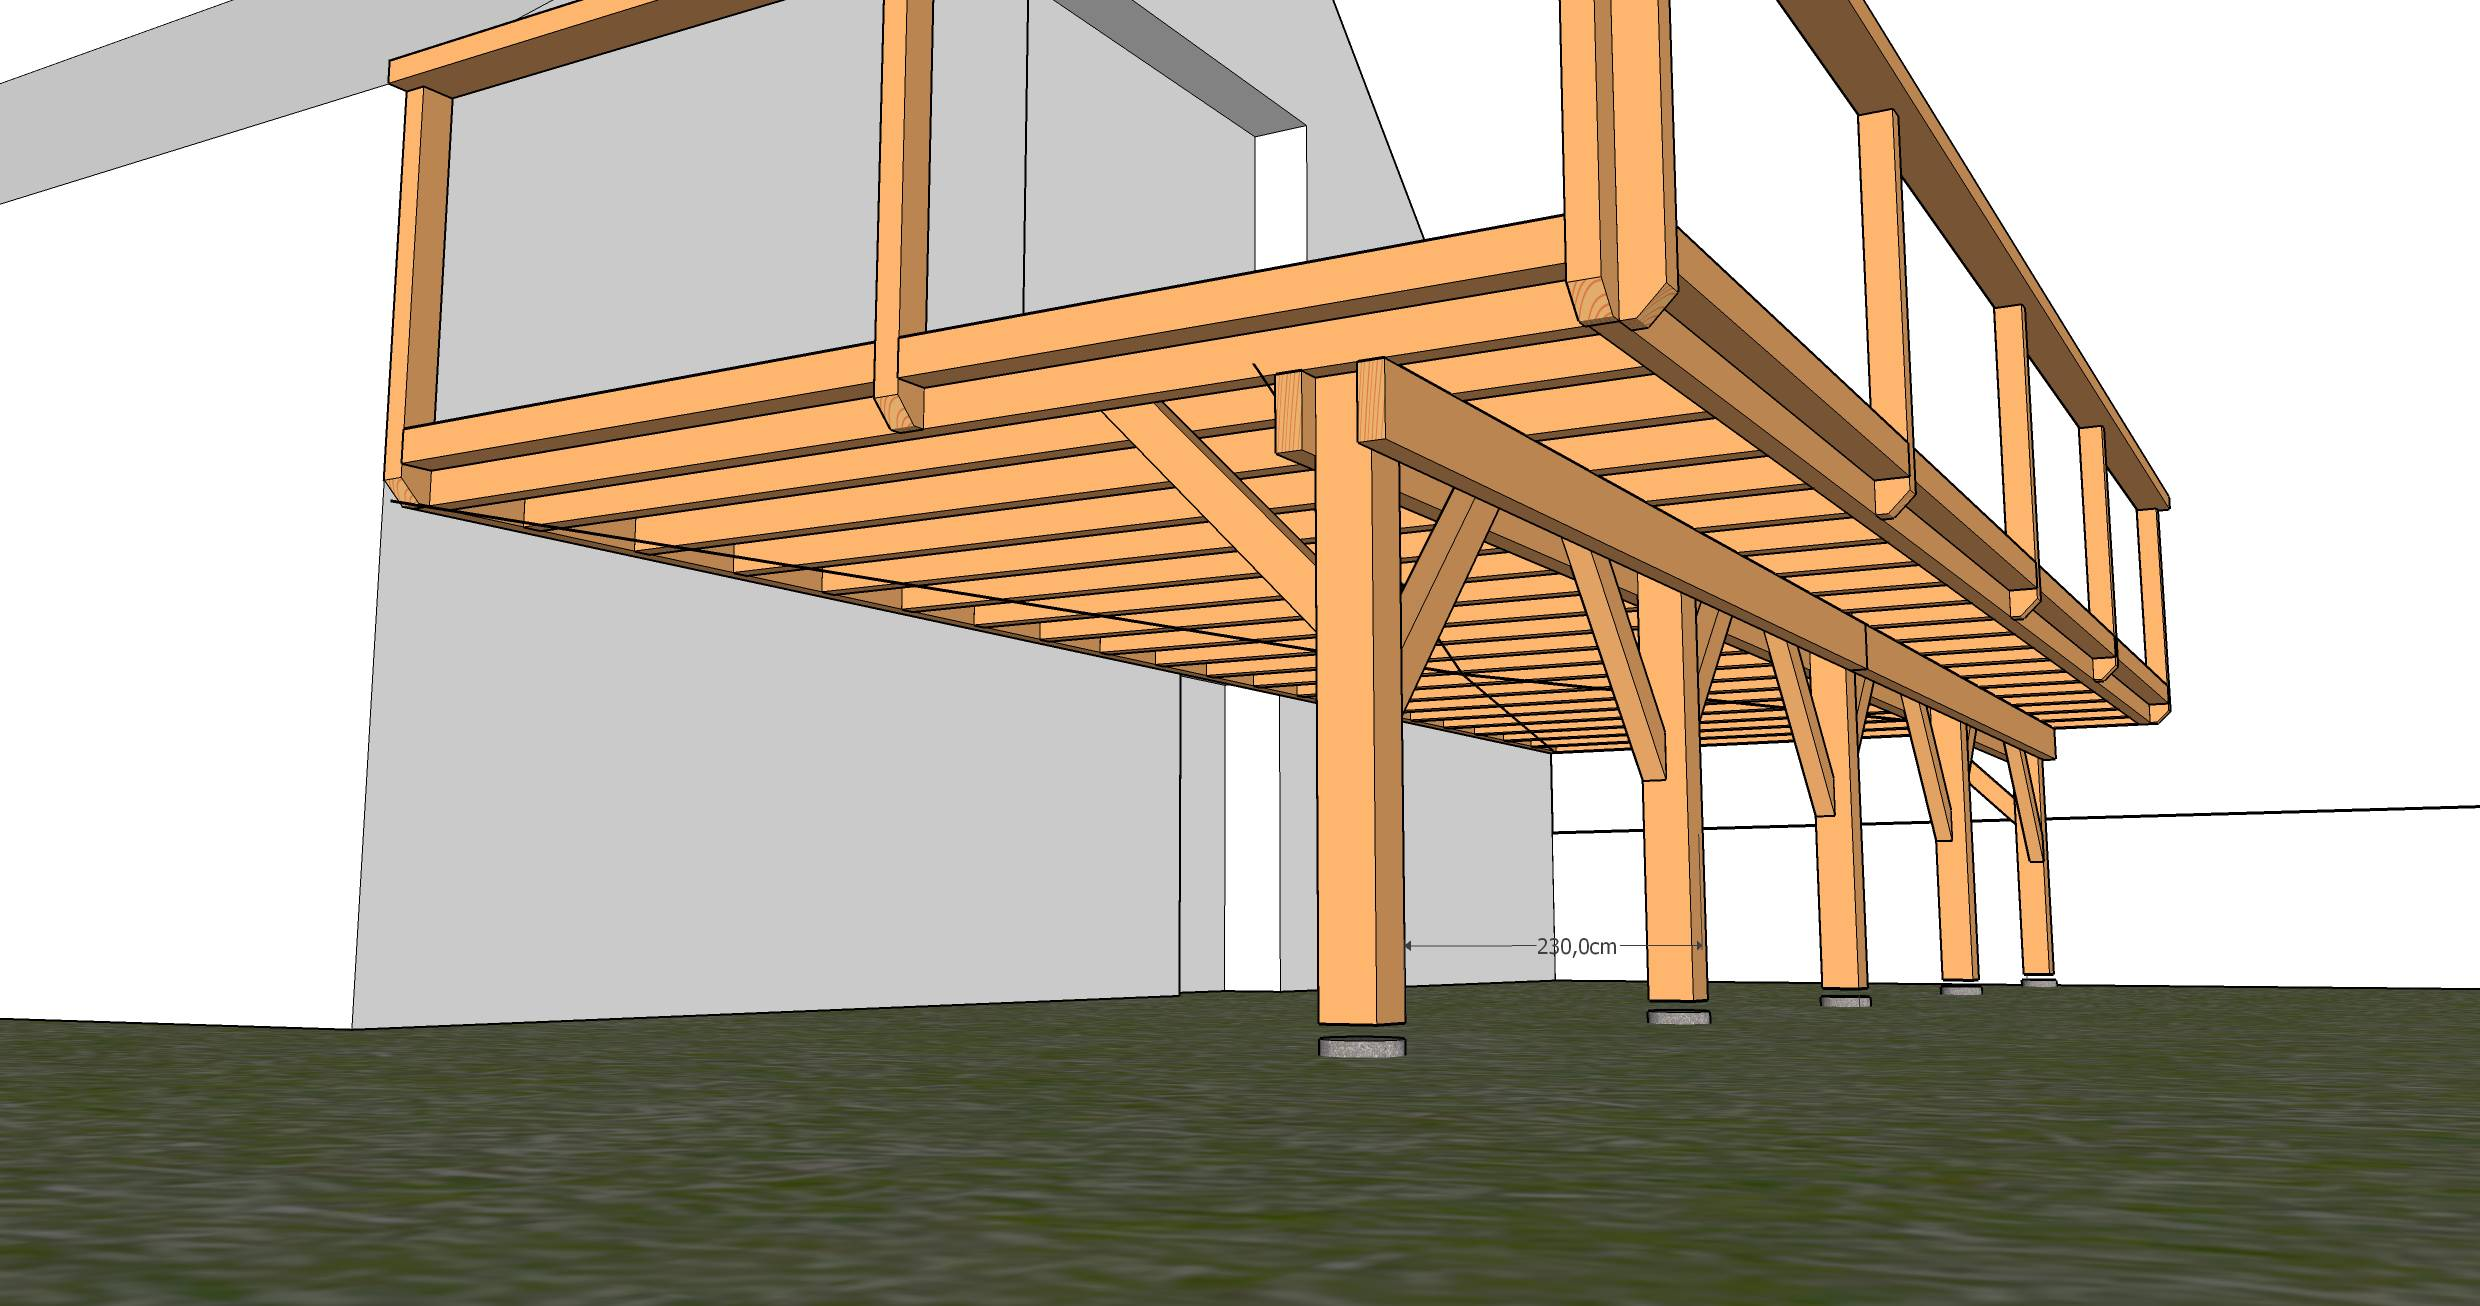 Plan Pour Terrasse En Bois Sur Pilotis Images Pictures to pin on